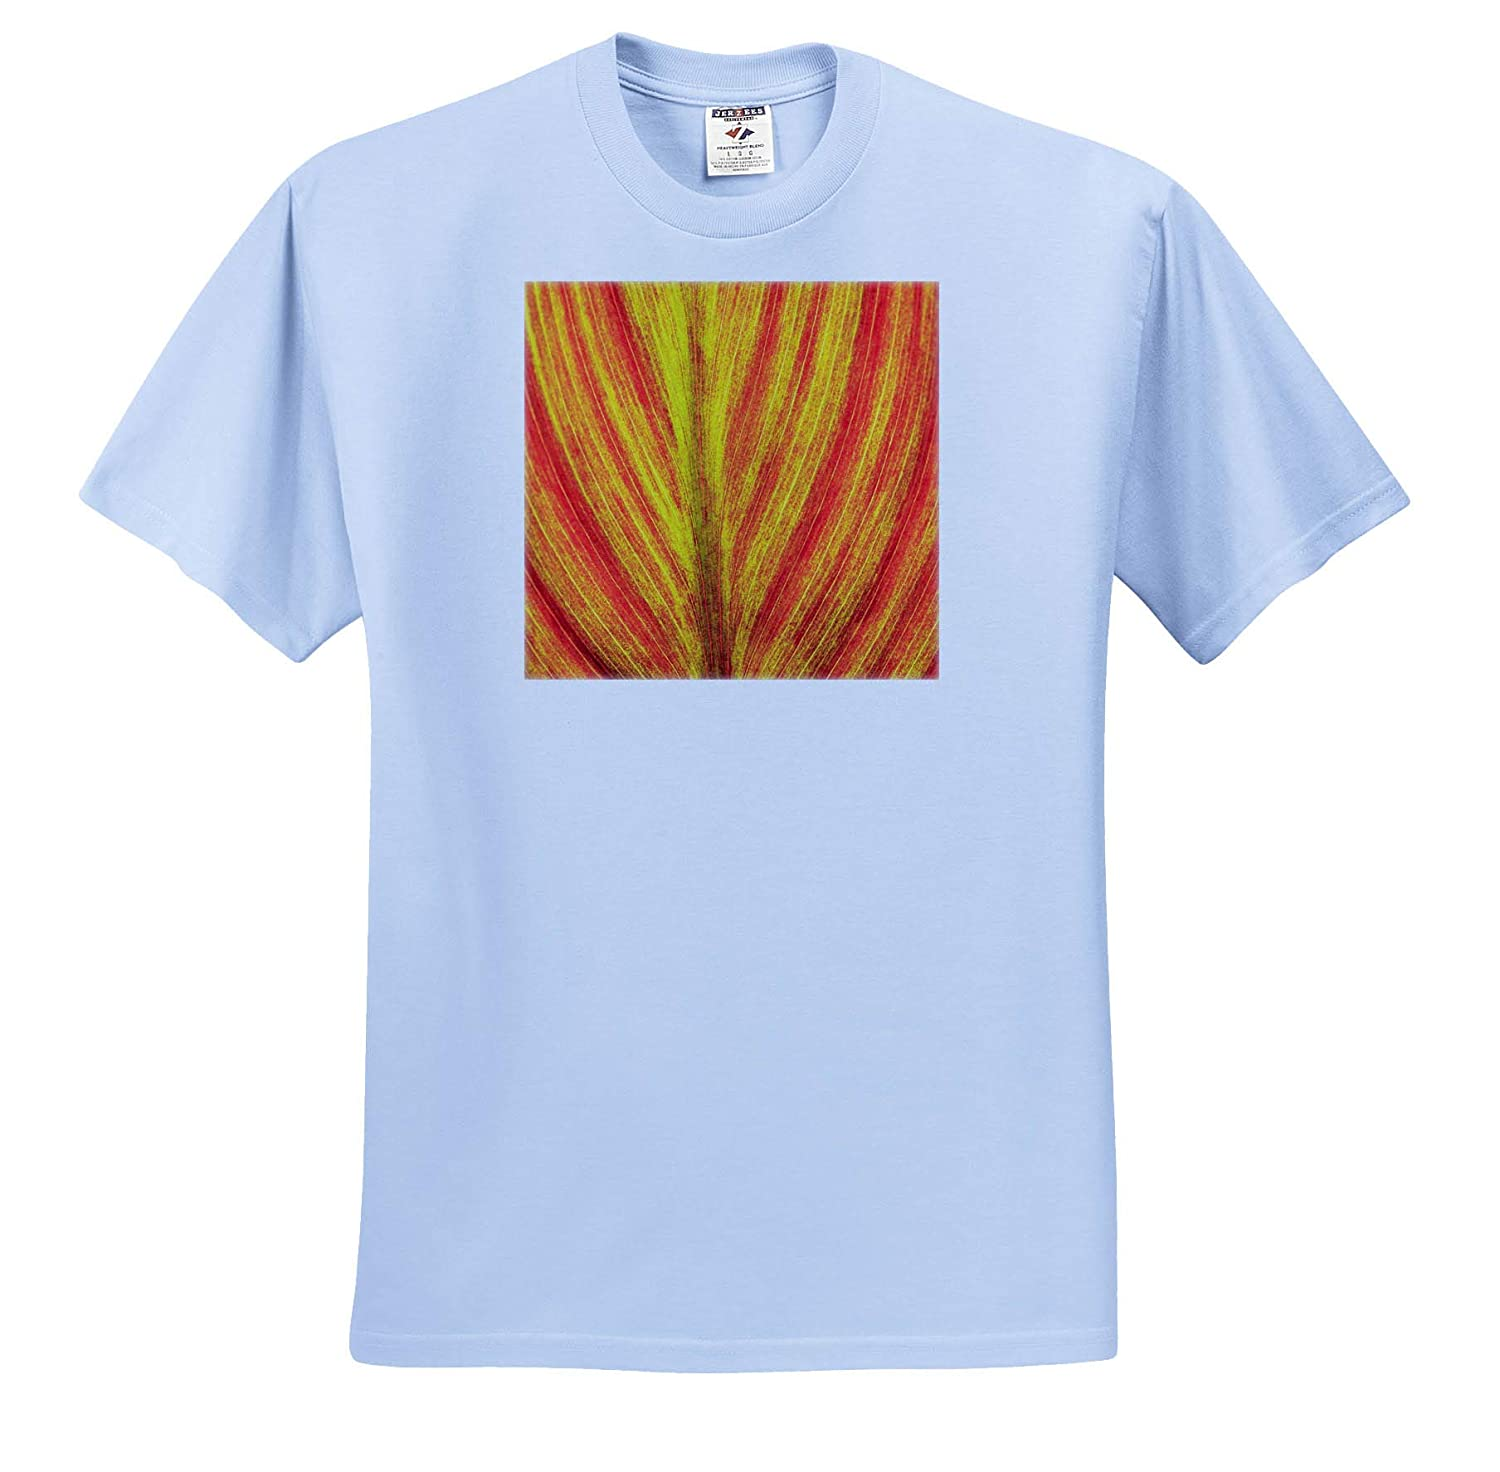 ts/_315196 - Adult T-Shirt XL Natural Patterns 3dRose Danita Delimont Close-up of an Orange and Yellow Tropical Leaf